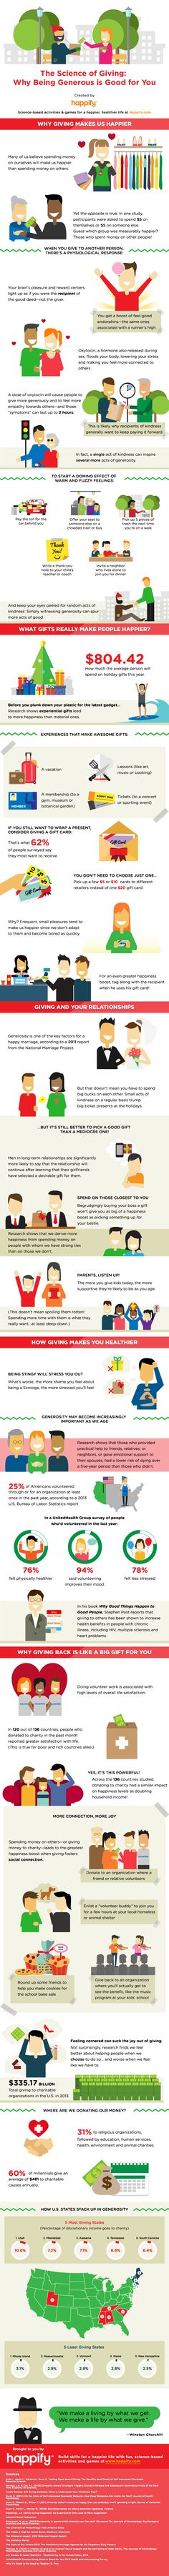 The Science of Giving: Why Being Generous is Good for You #happiness #health